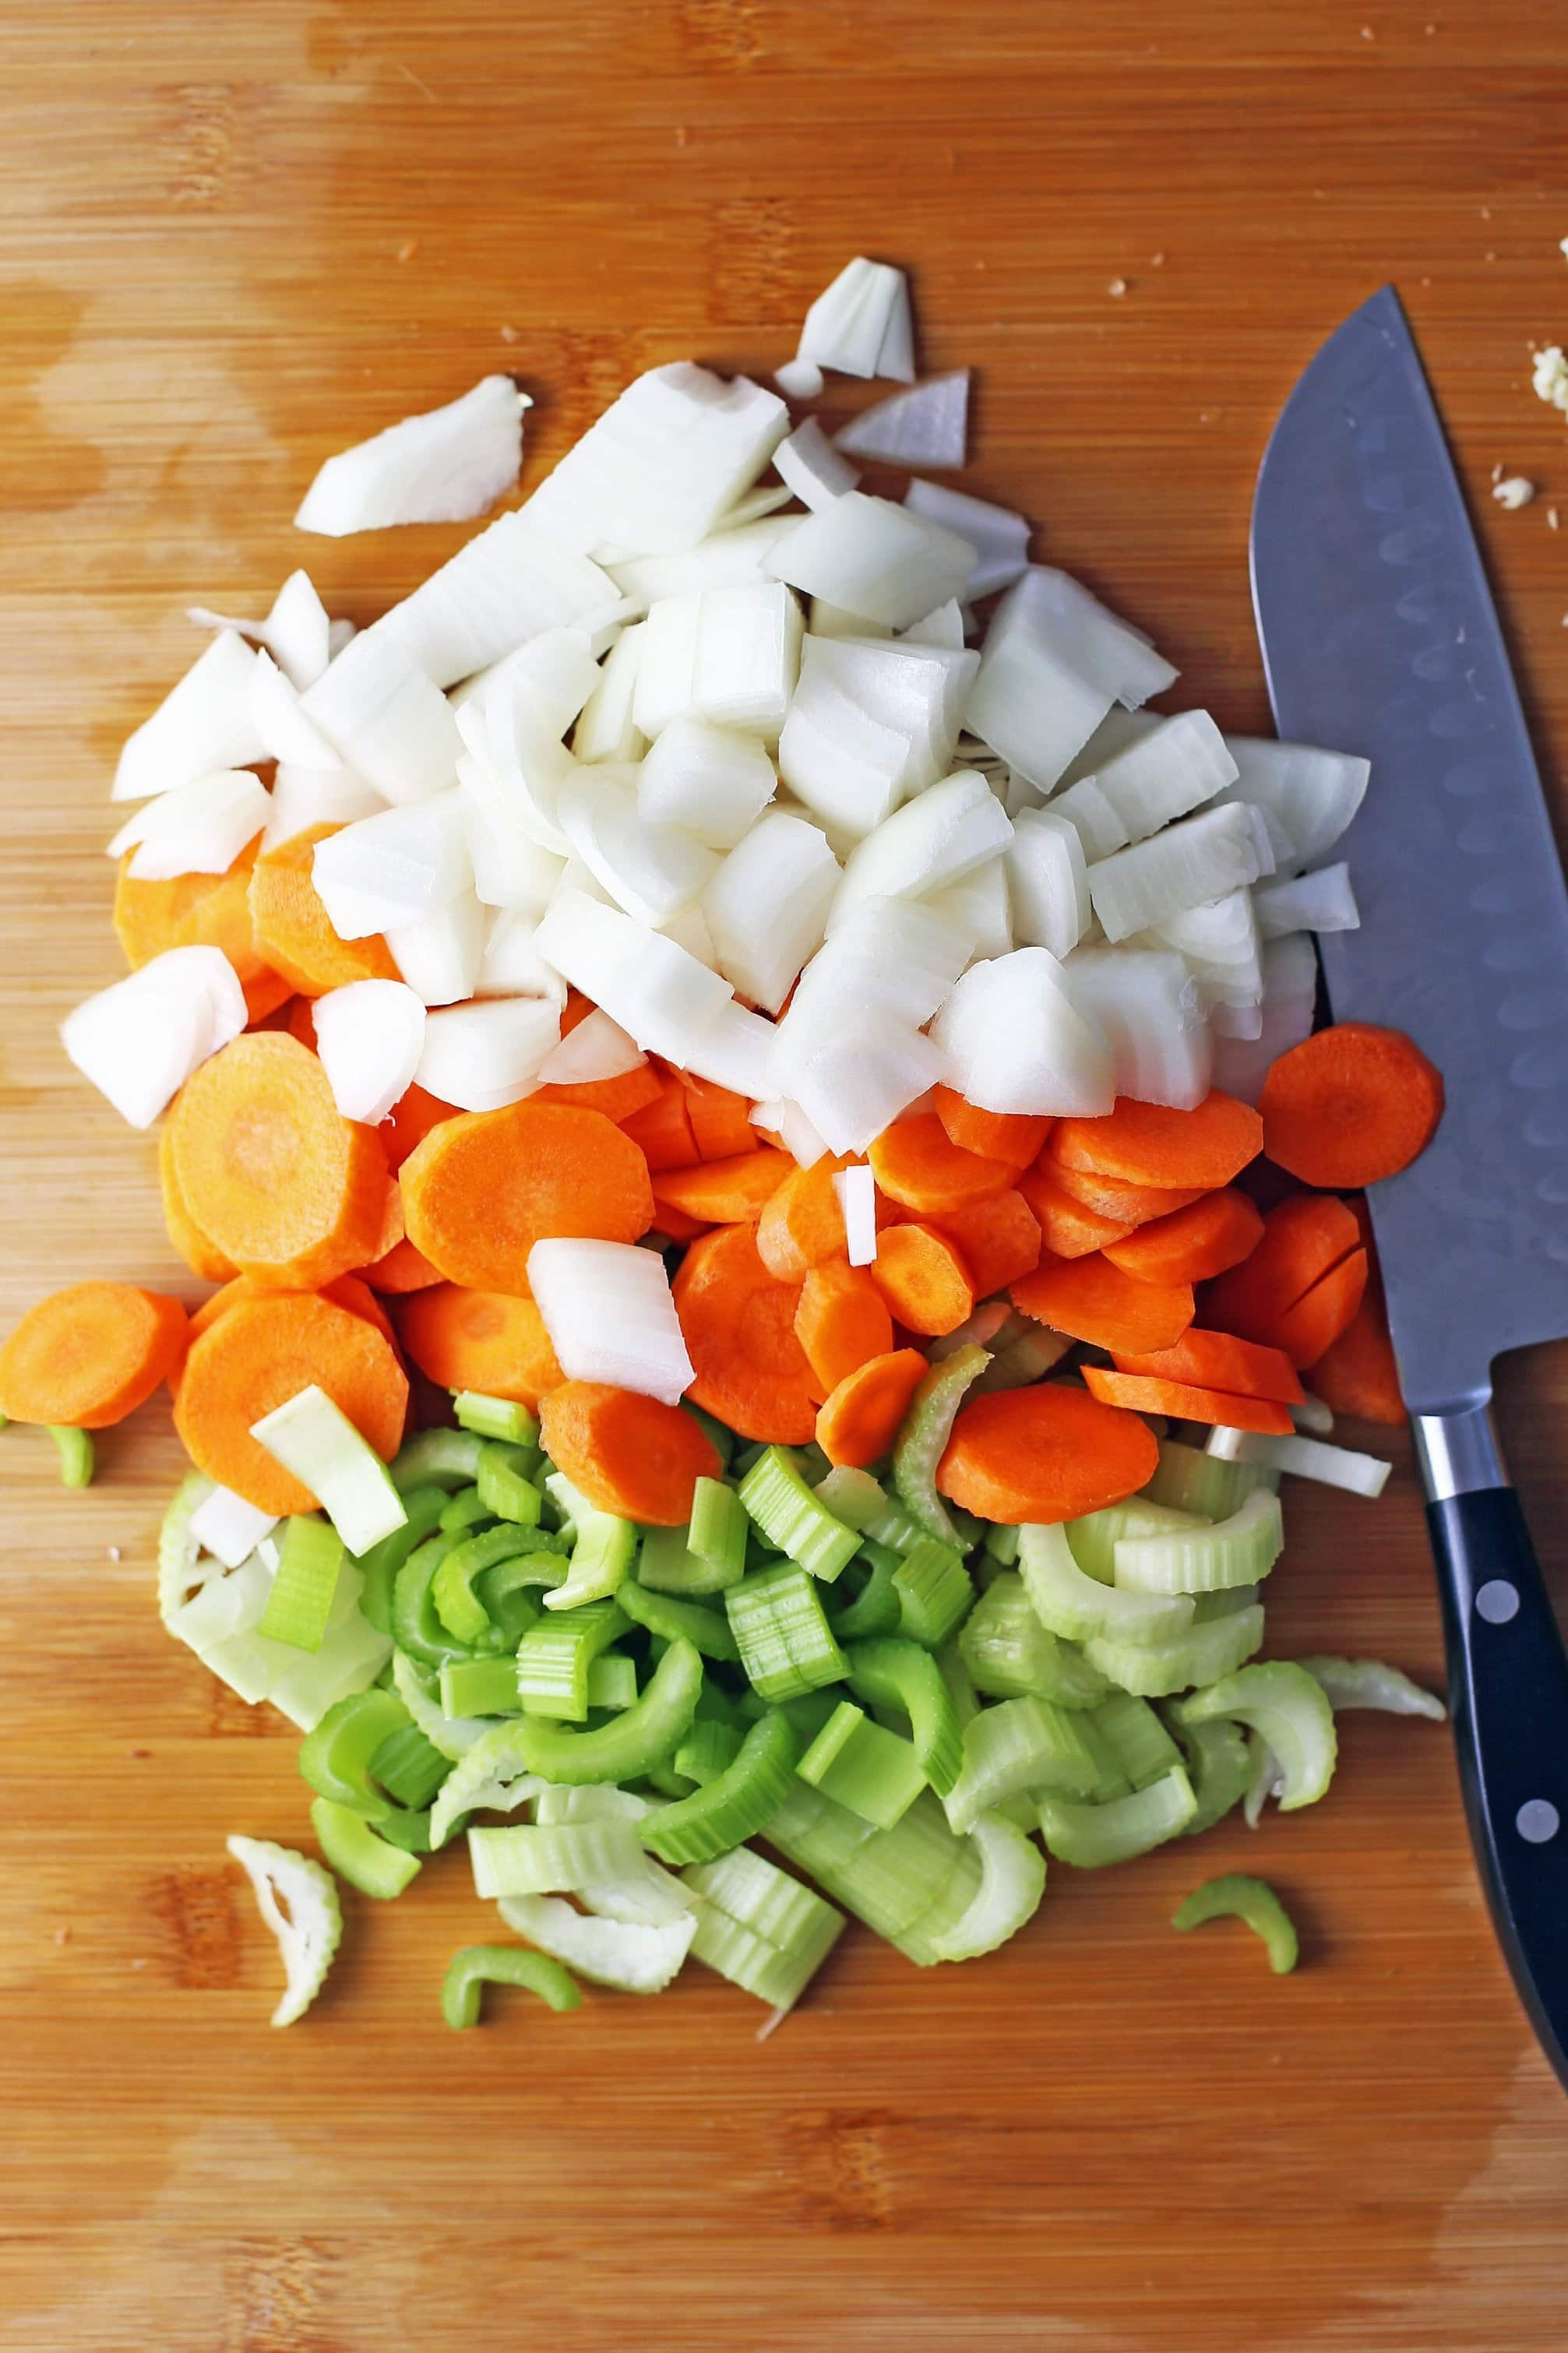 Chopped white onion, carrots, and celery on wooden cutting board with a knife on the the side of the vegetables.